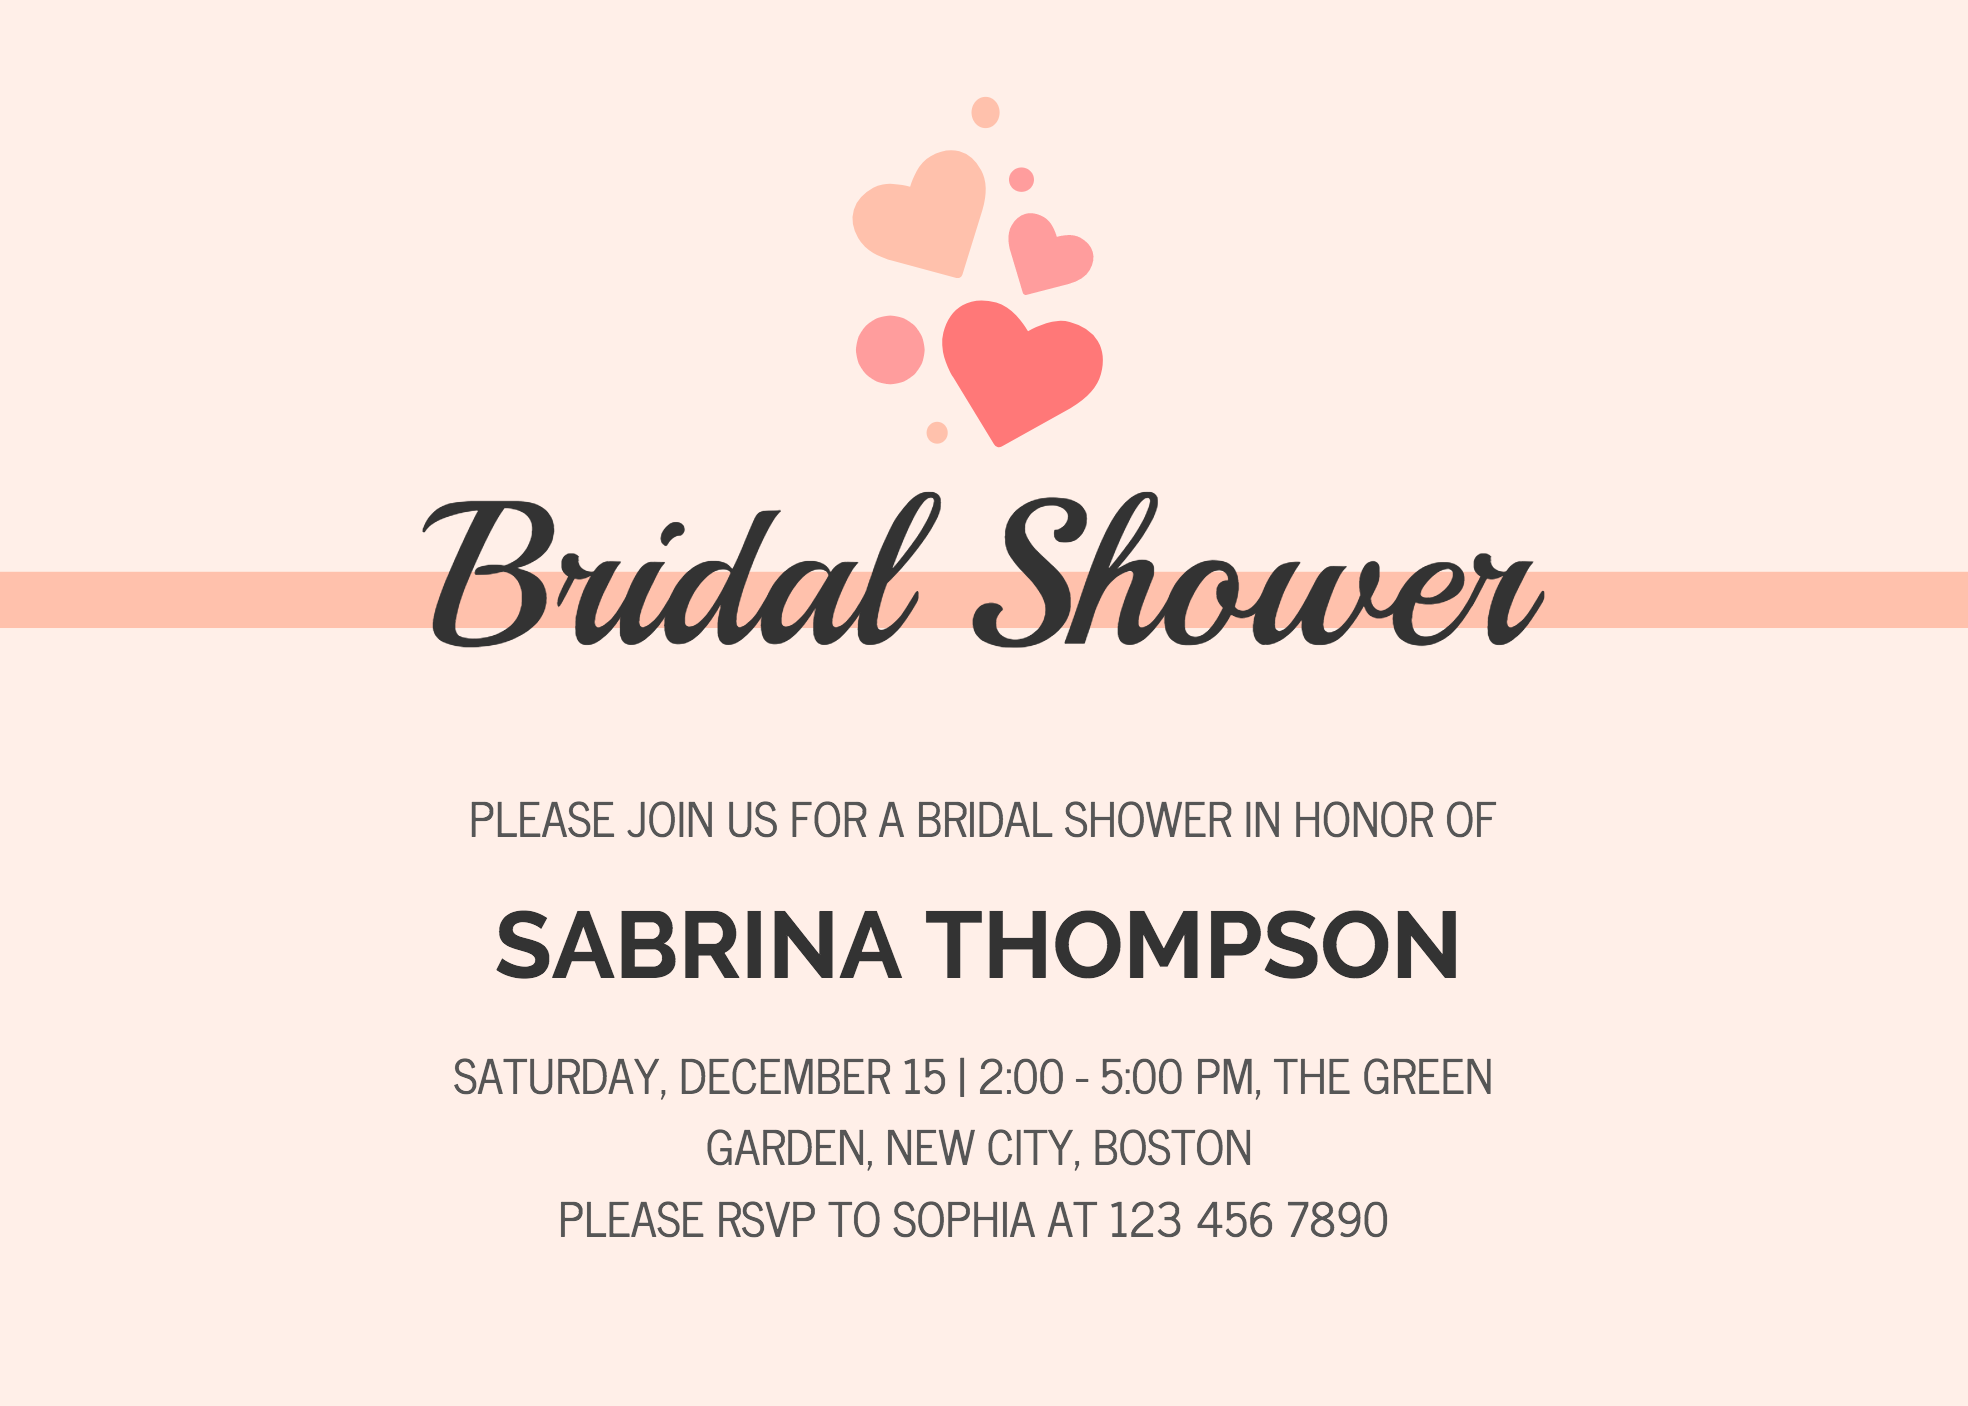 invitations ideas wedding beautiful shower of invites zazzle fearsome party full invitation design size